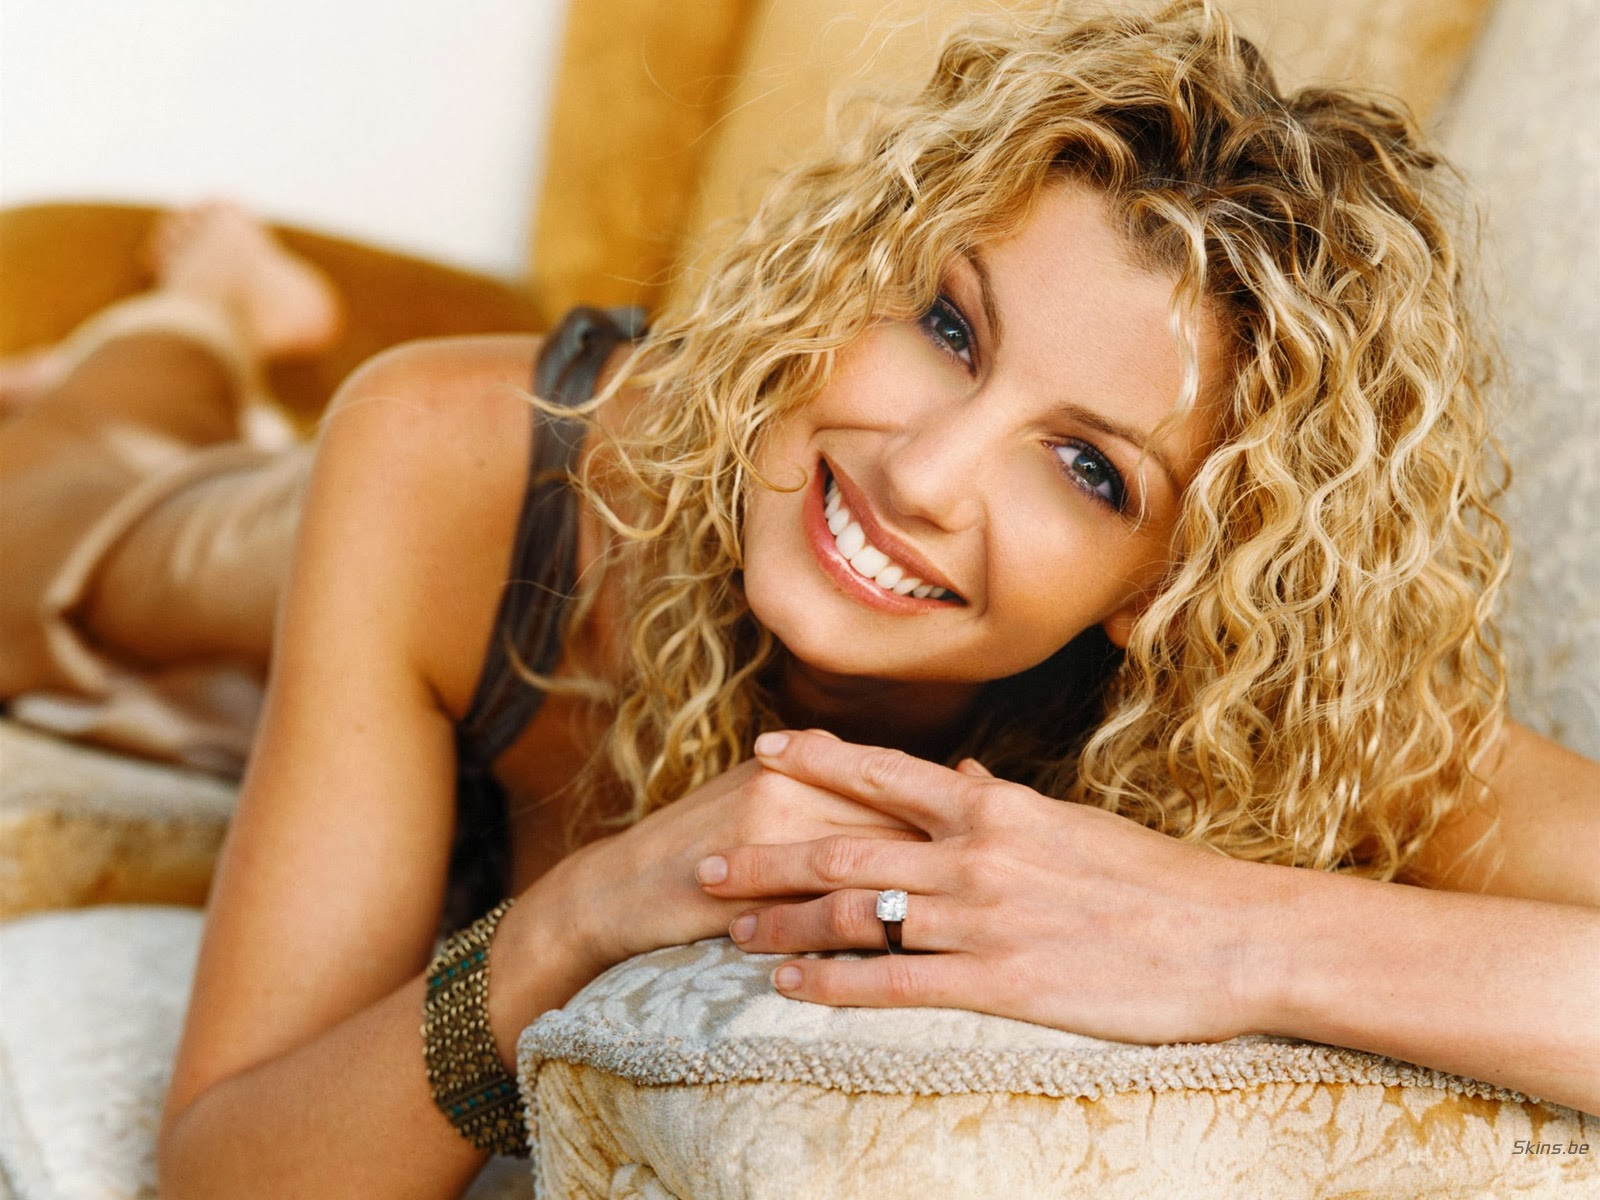 Country music singer faith hill nude all